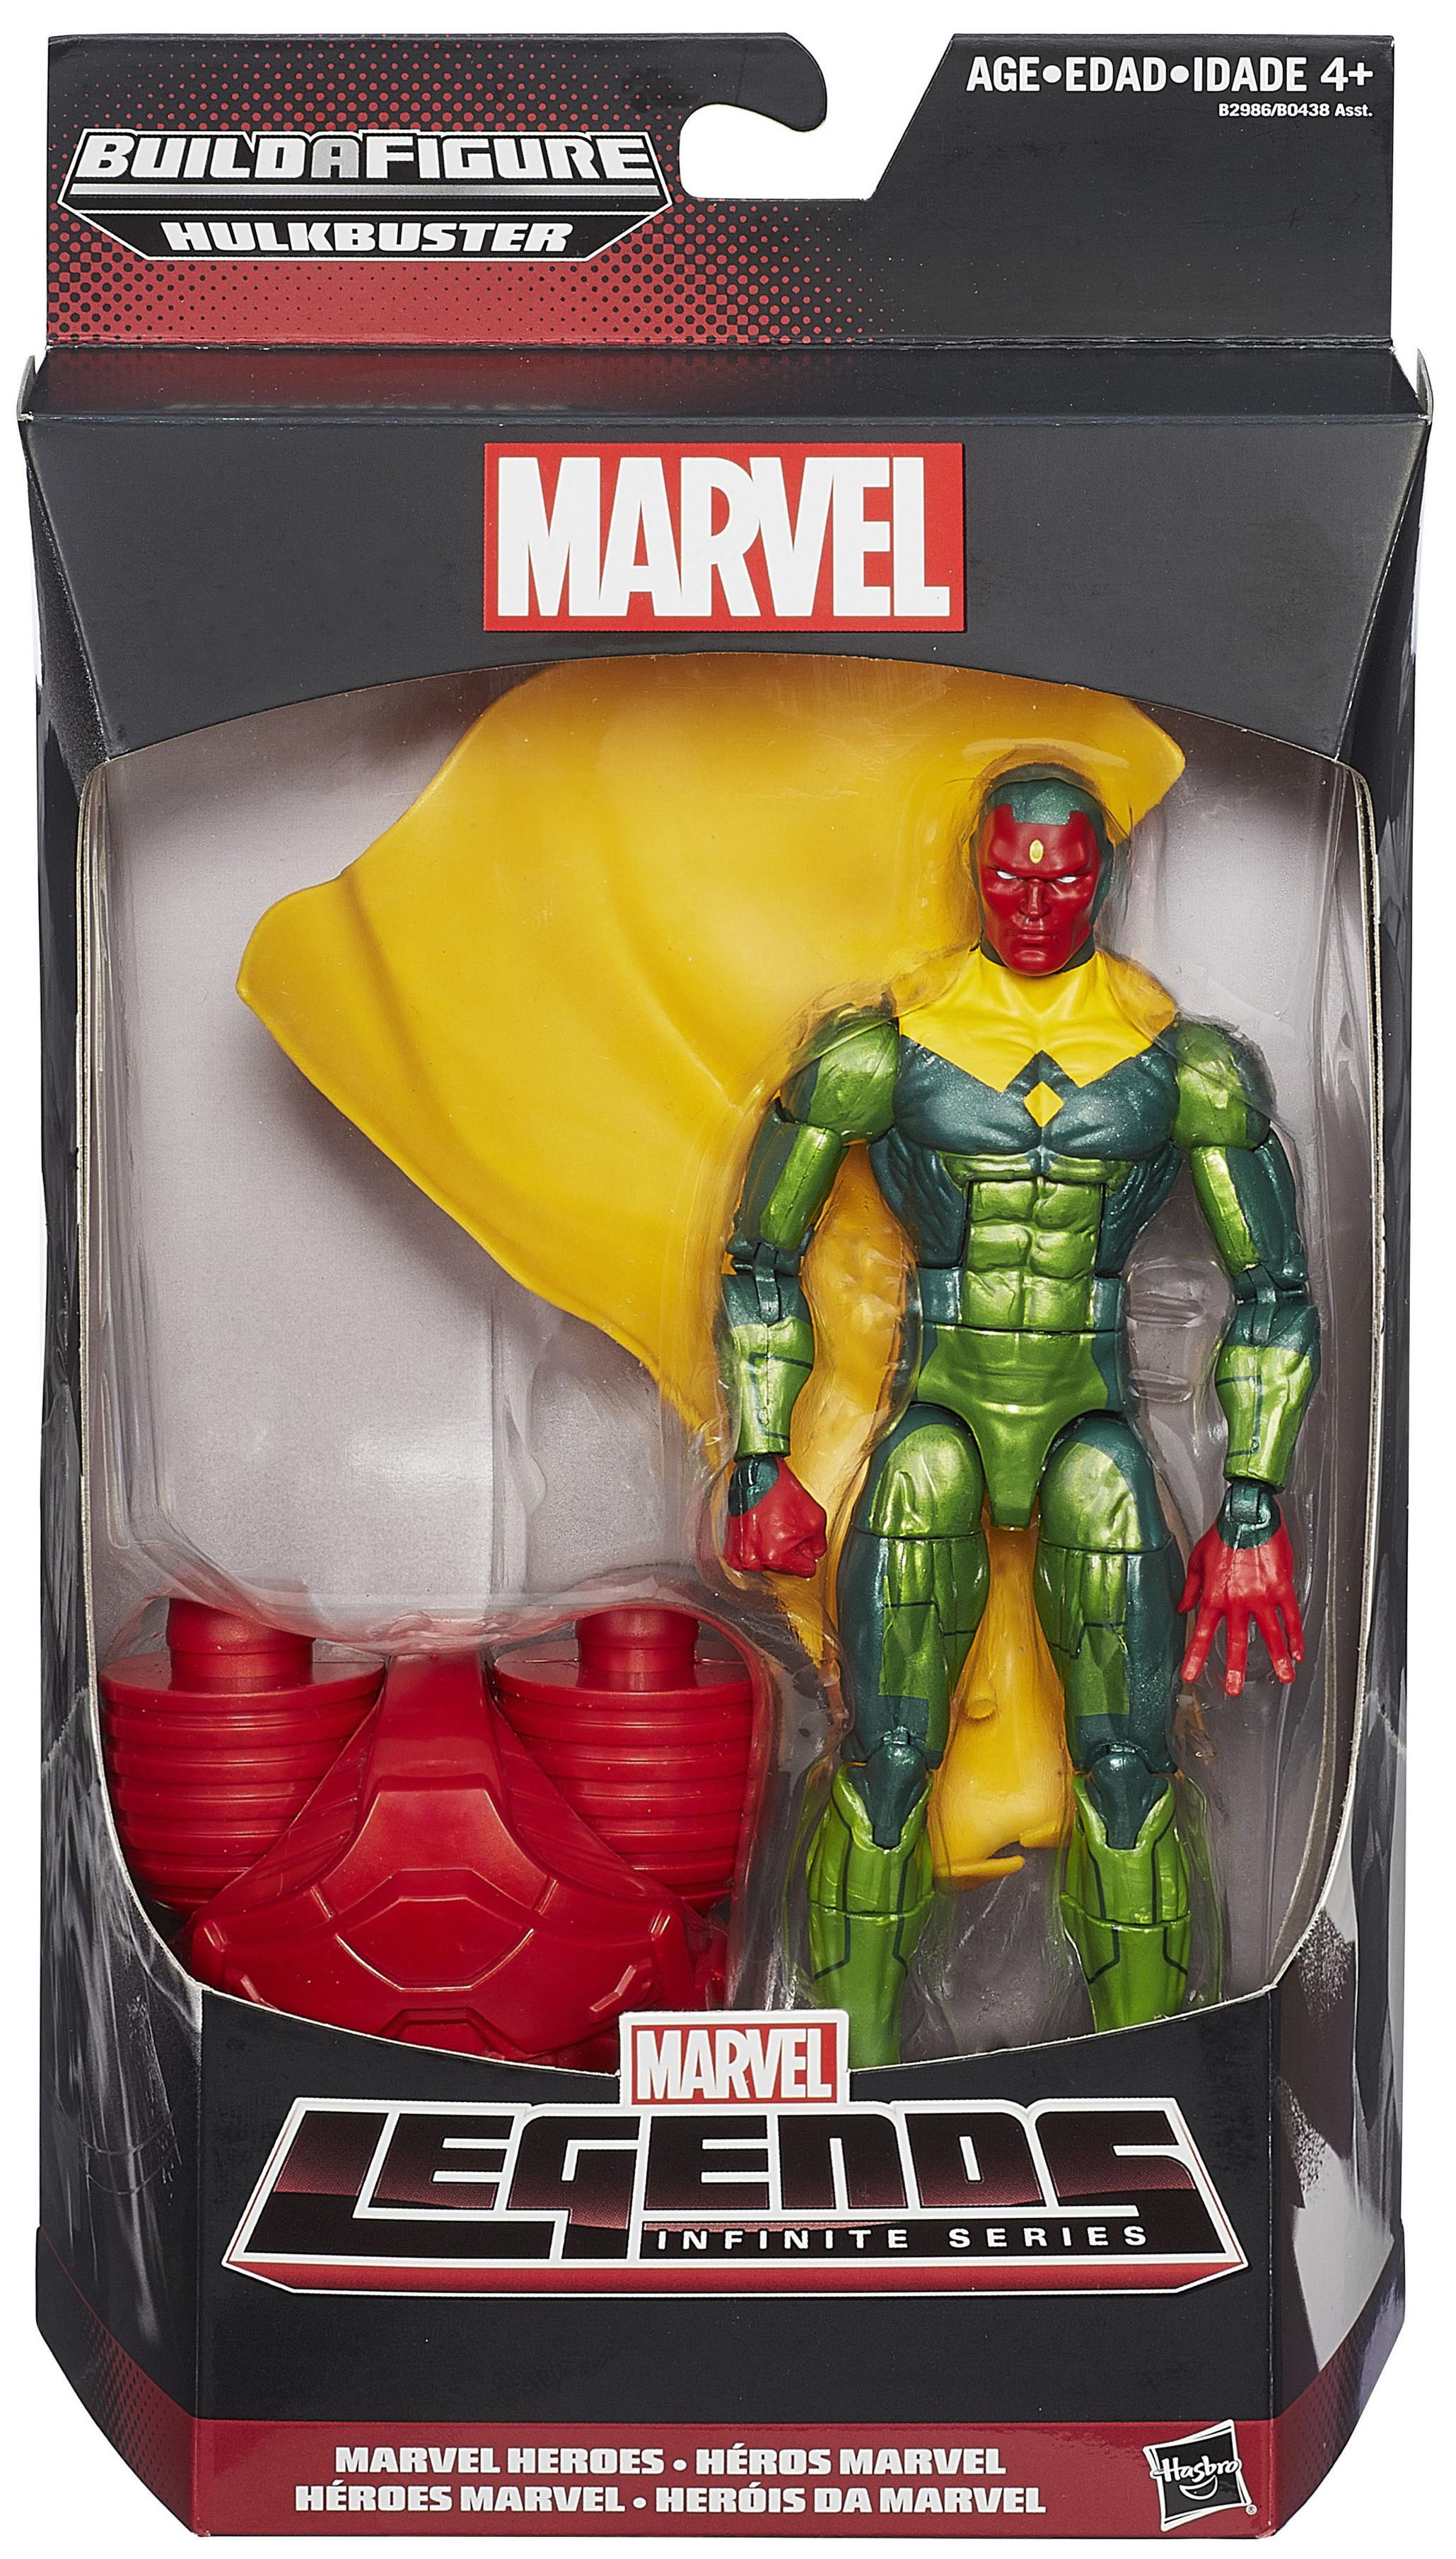 Marvel Legends Hulkbuster (Infinite Series) Vision